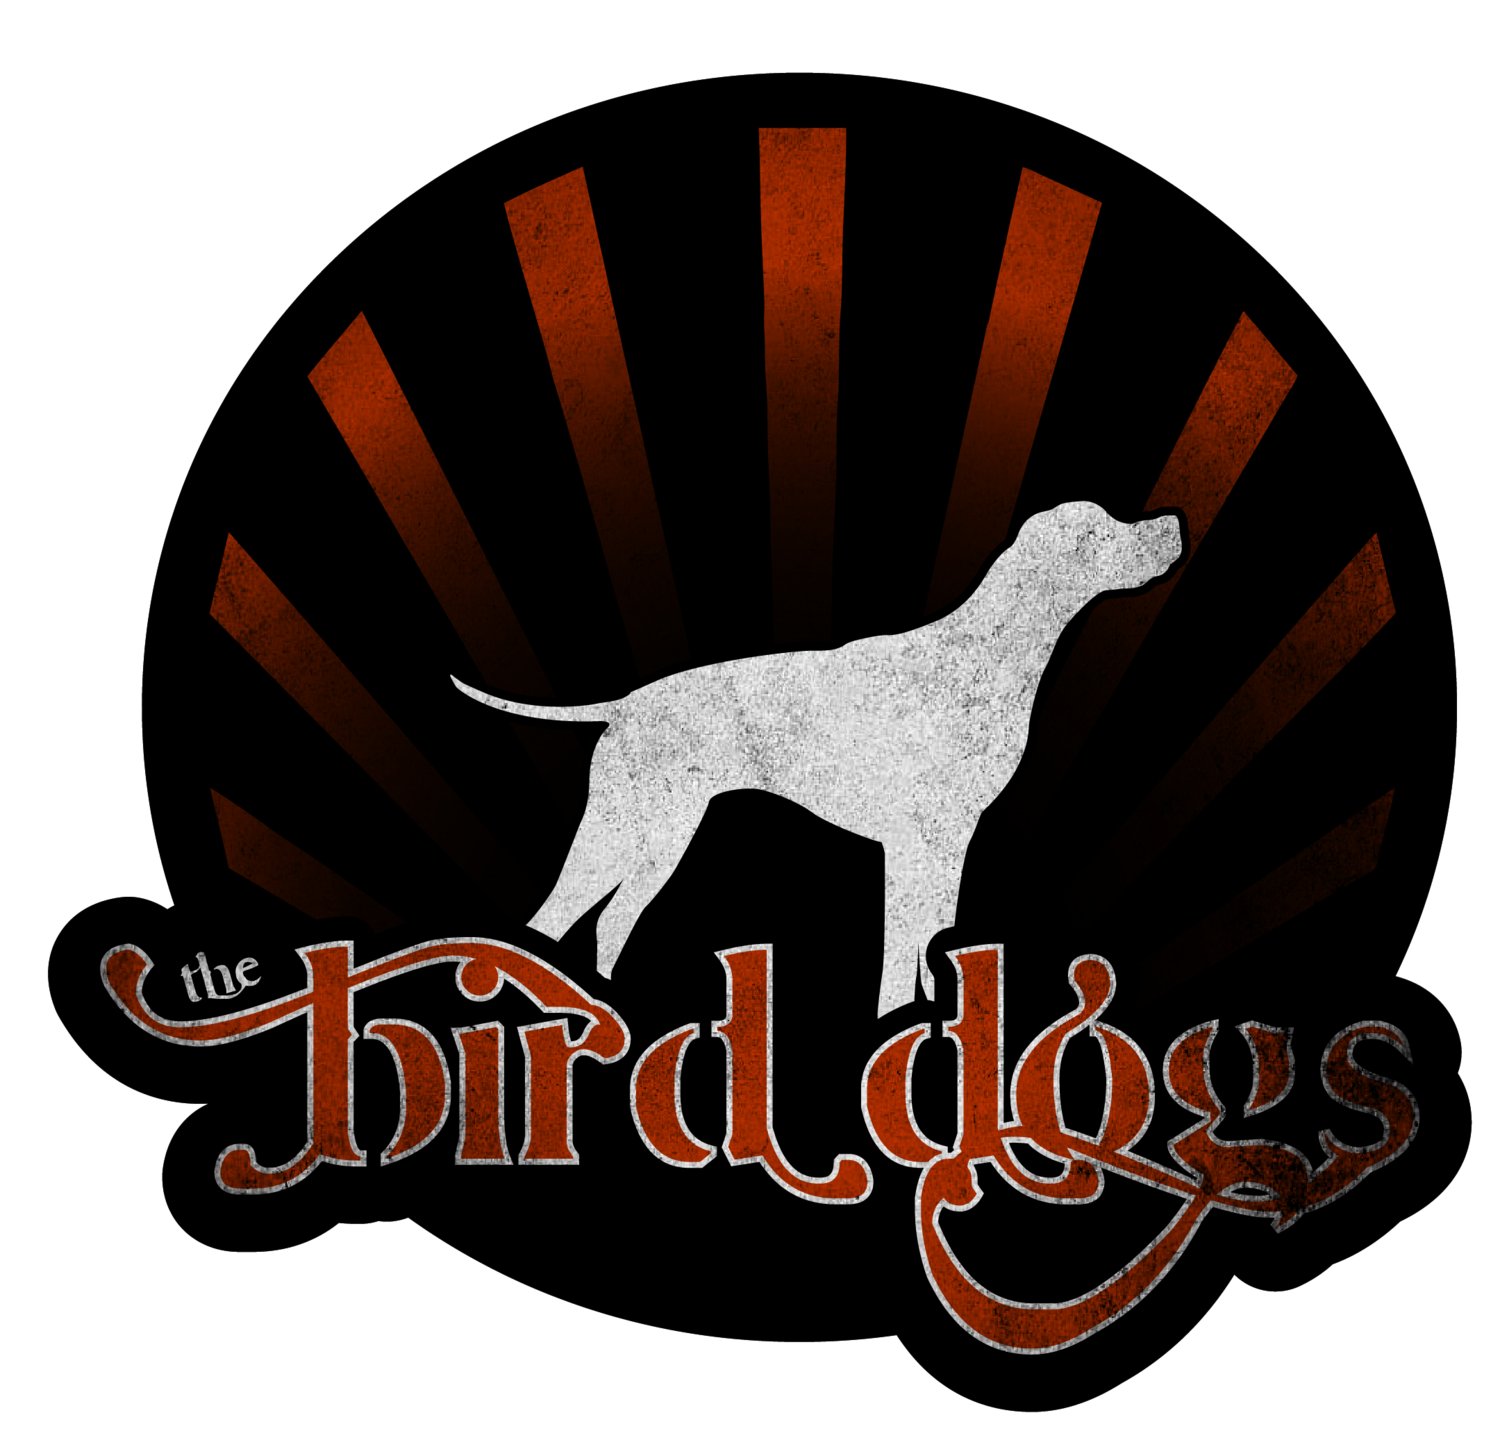 George Dunham & The Bird Dogs